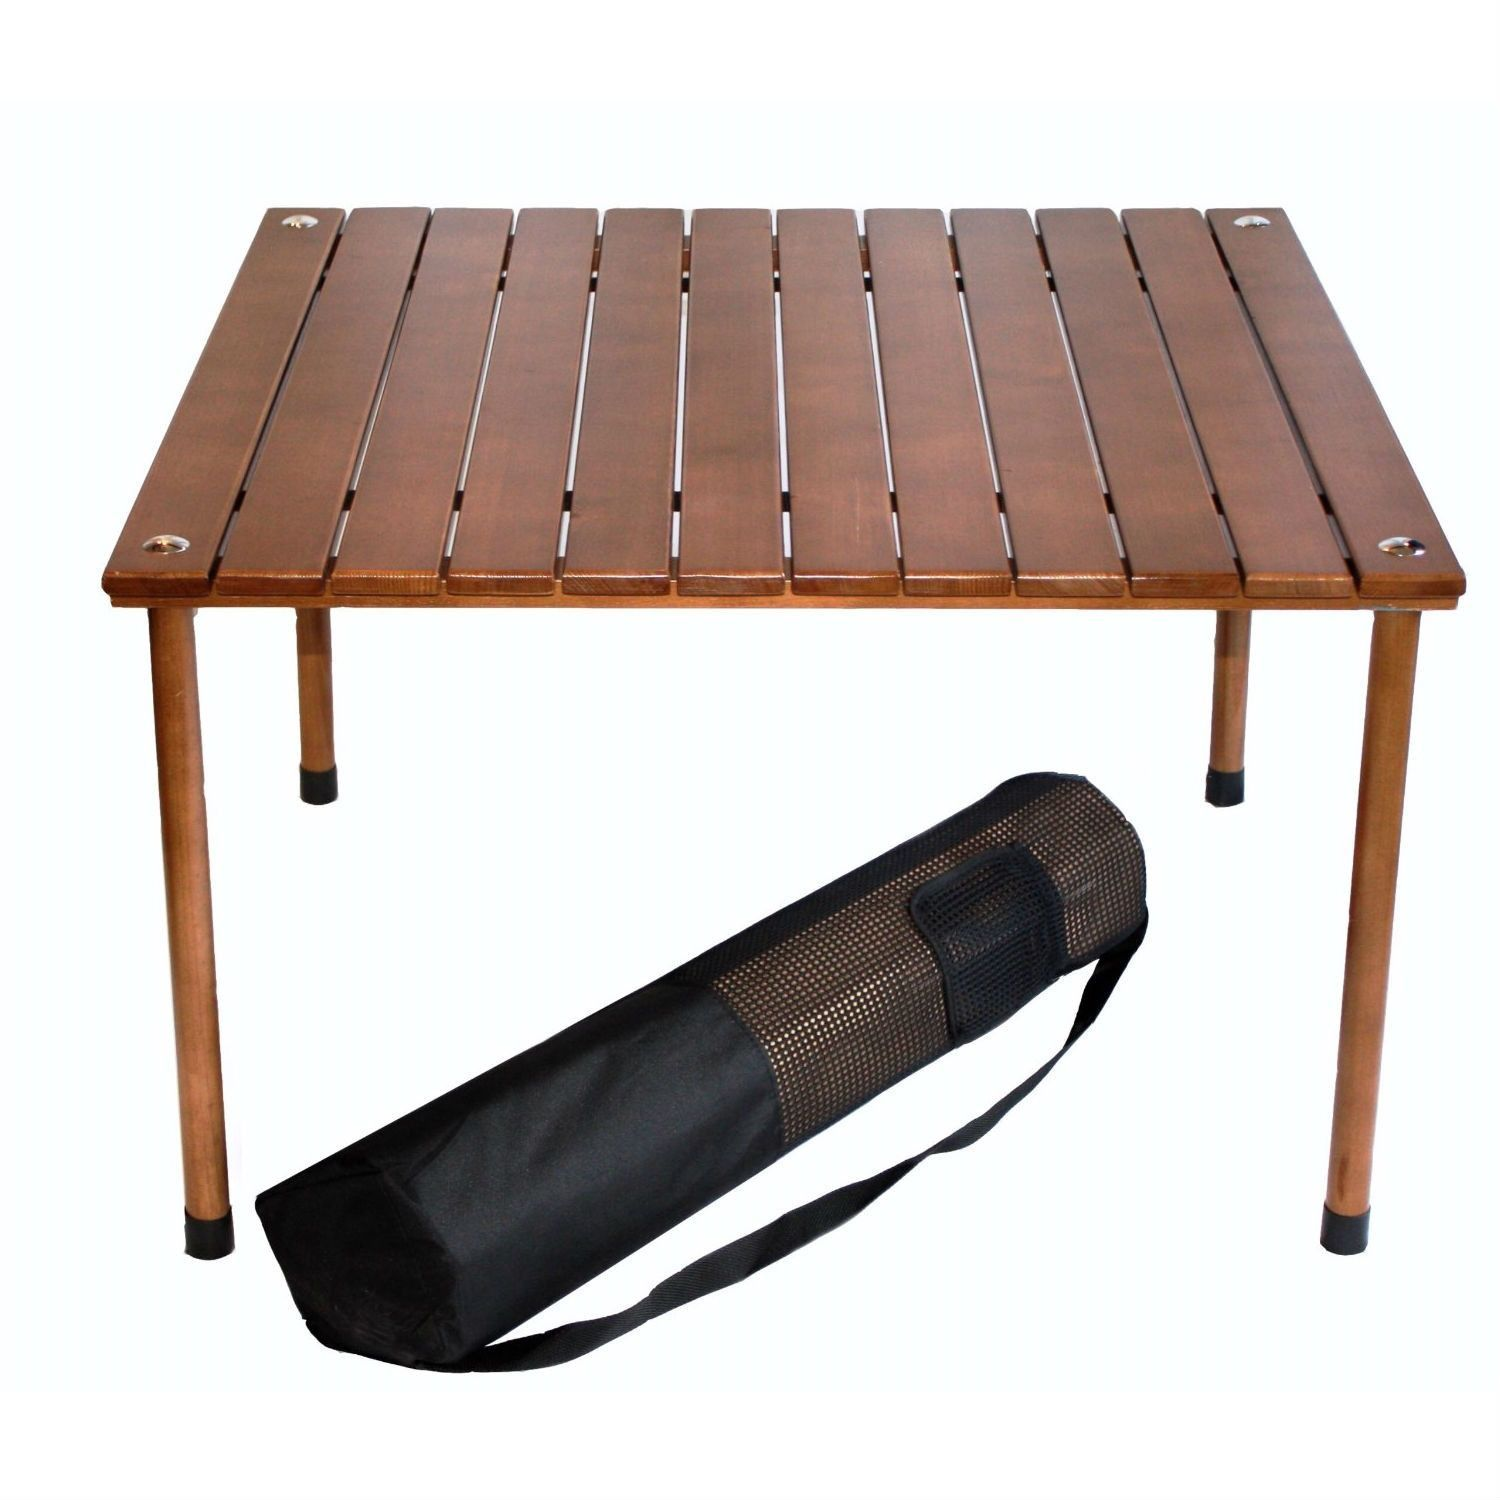 Superior Outdoor Portable Folding Table With Carry Bag With Solid Wood Top